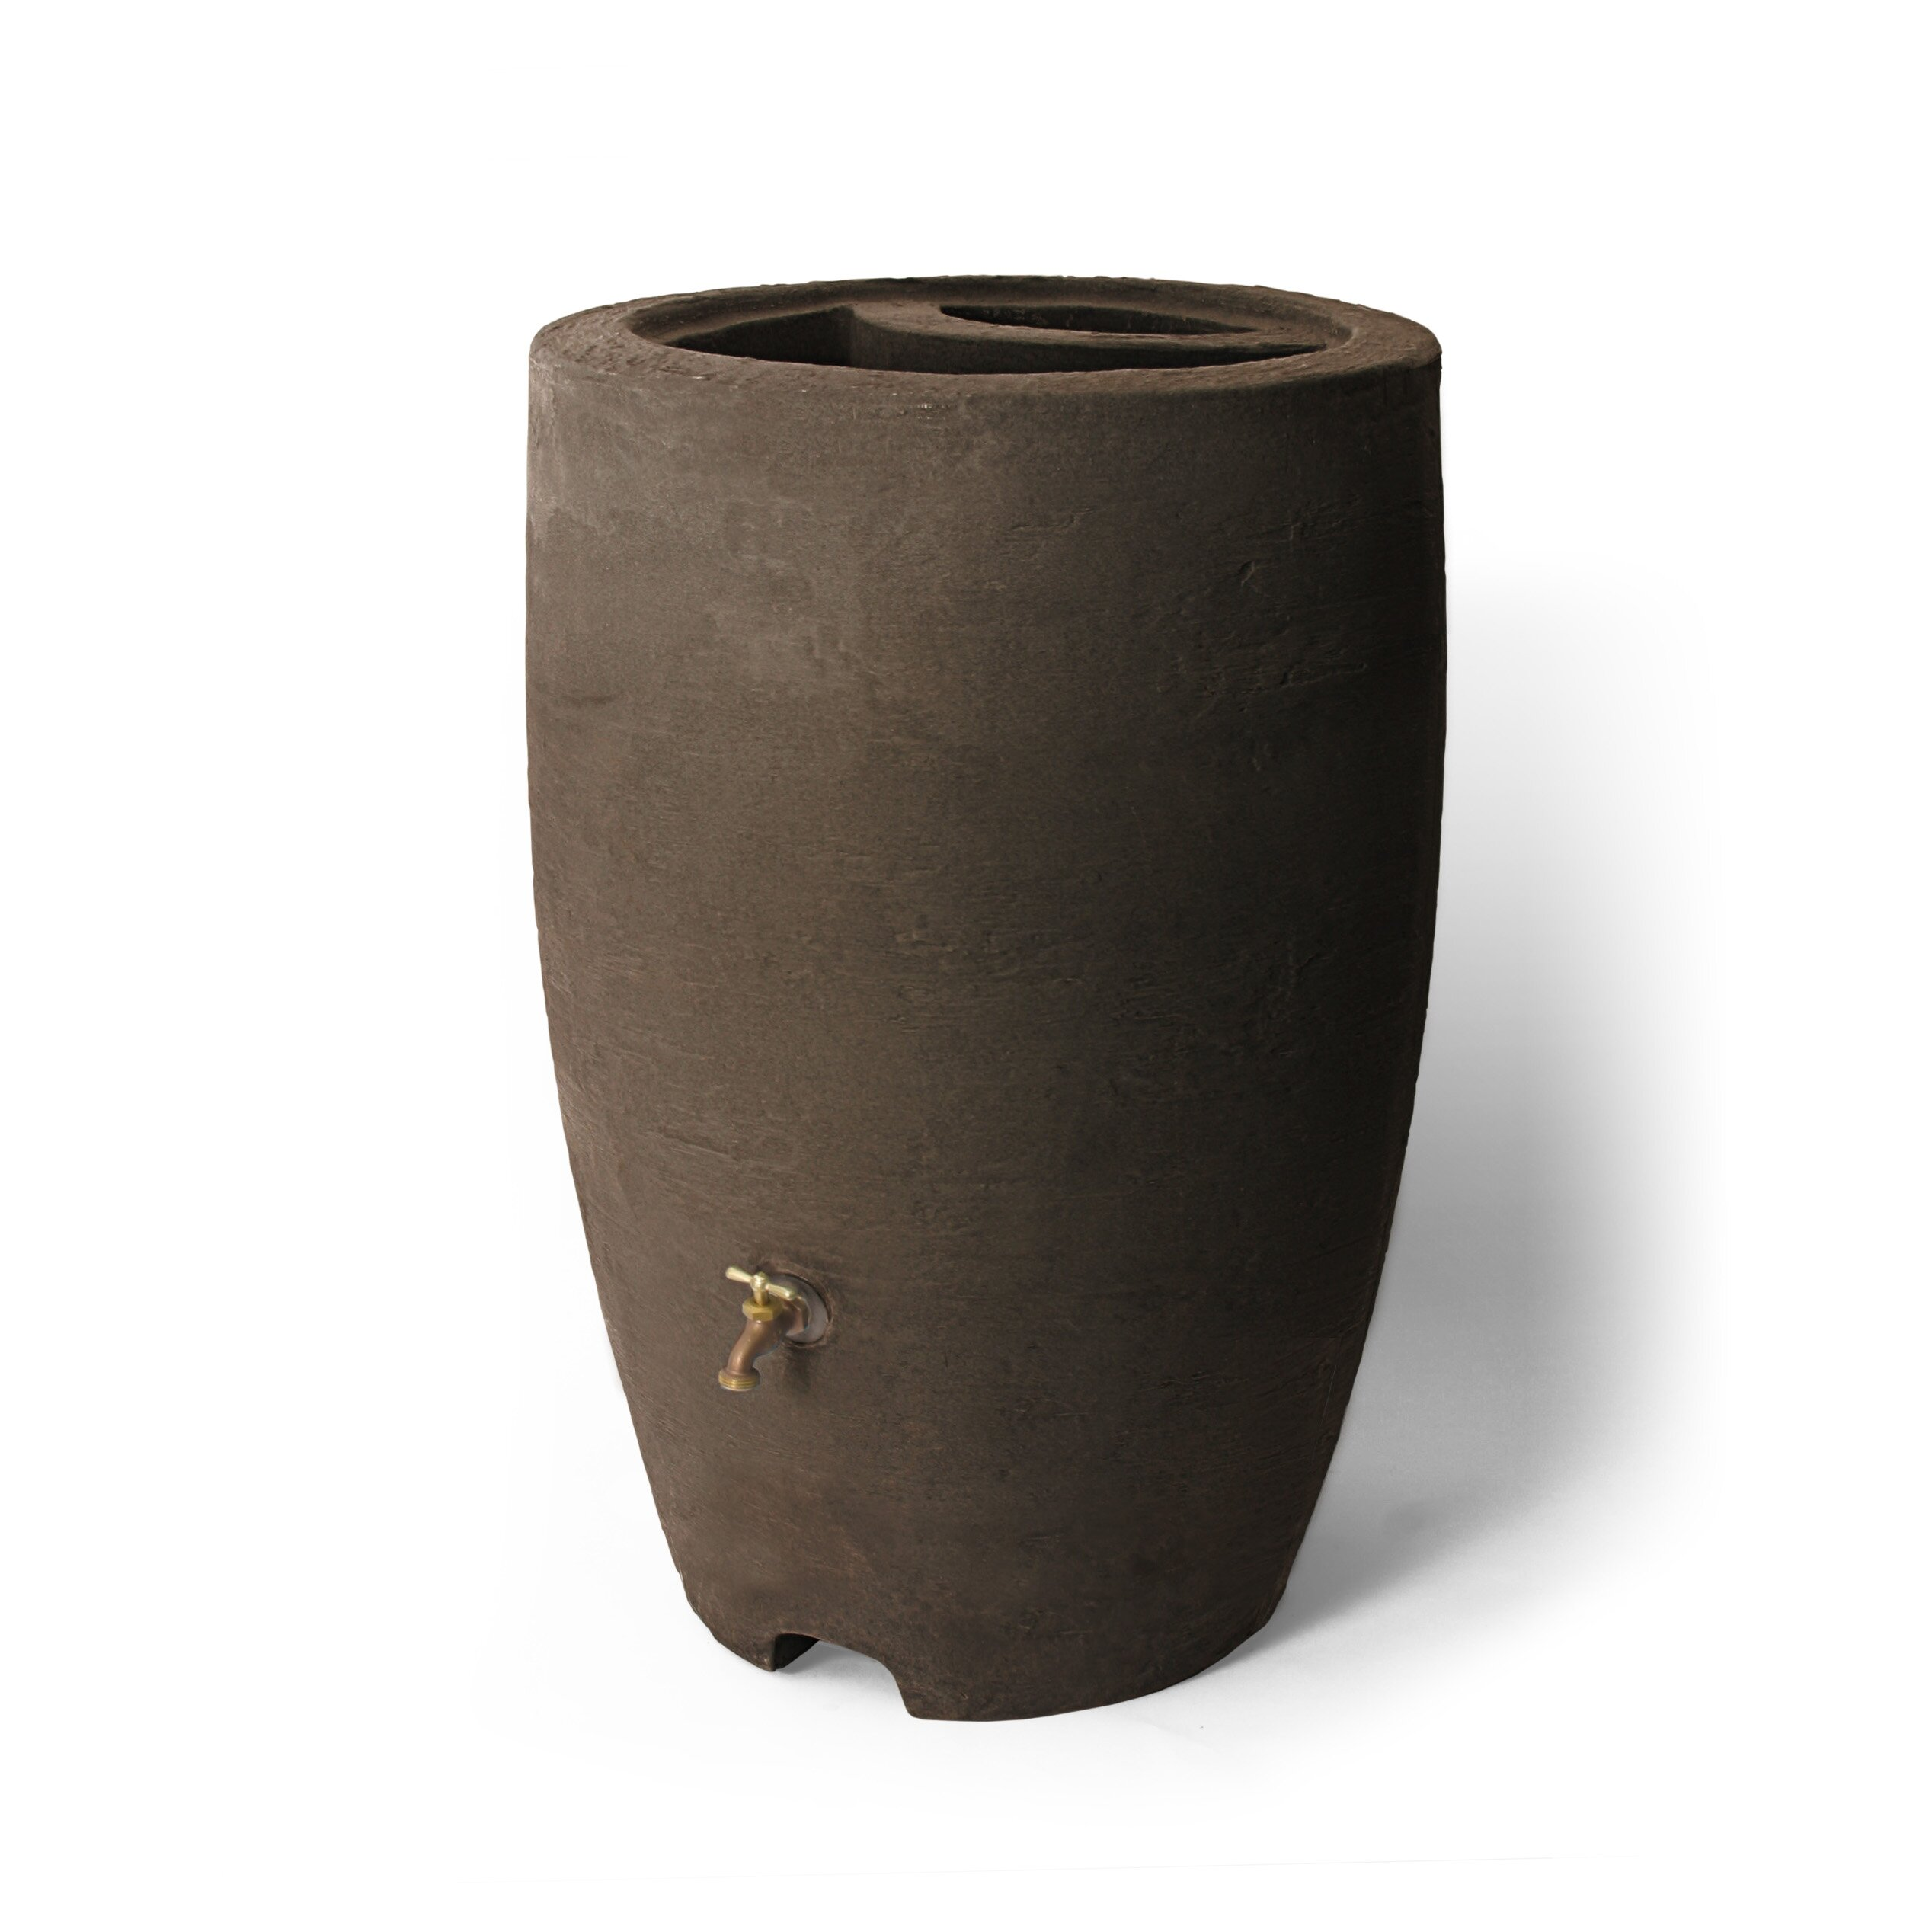 Algreen Athena Rain Barrel & Reviews | Wayfair